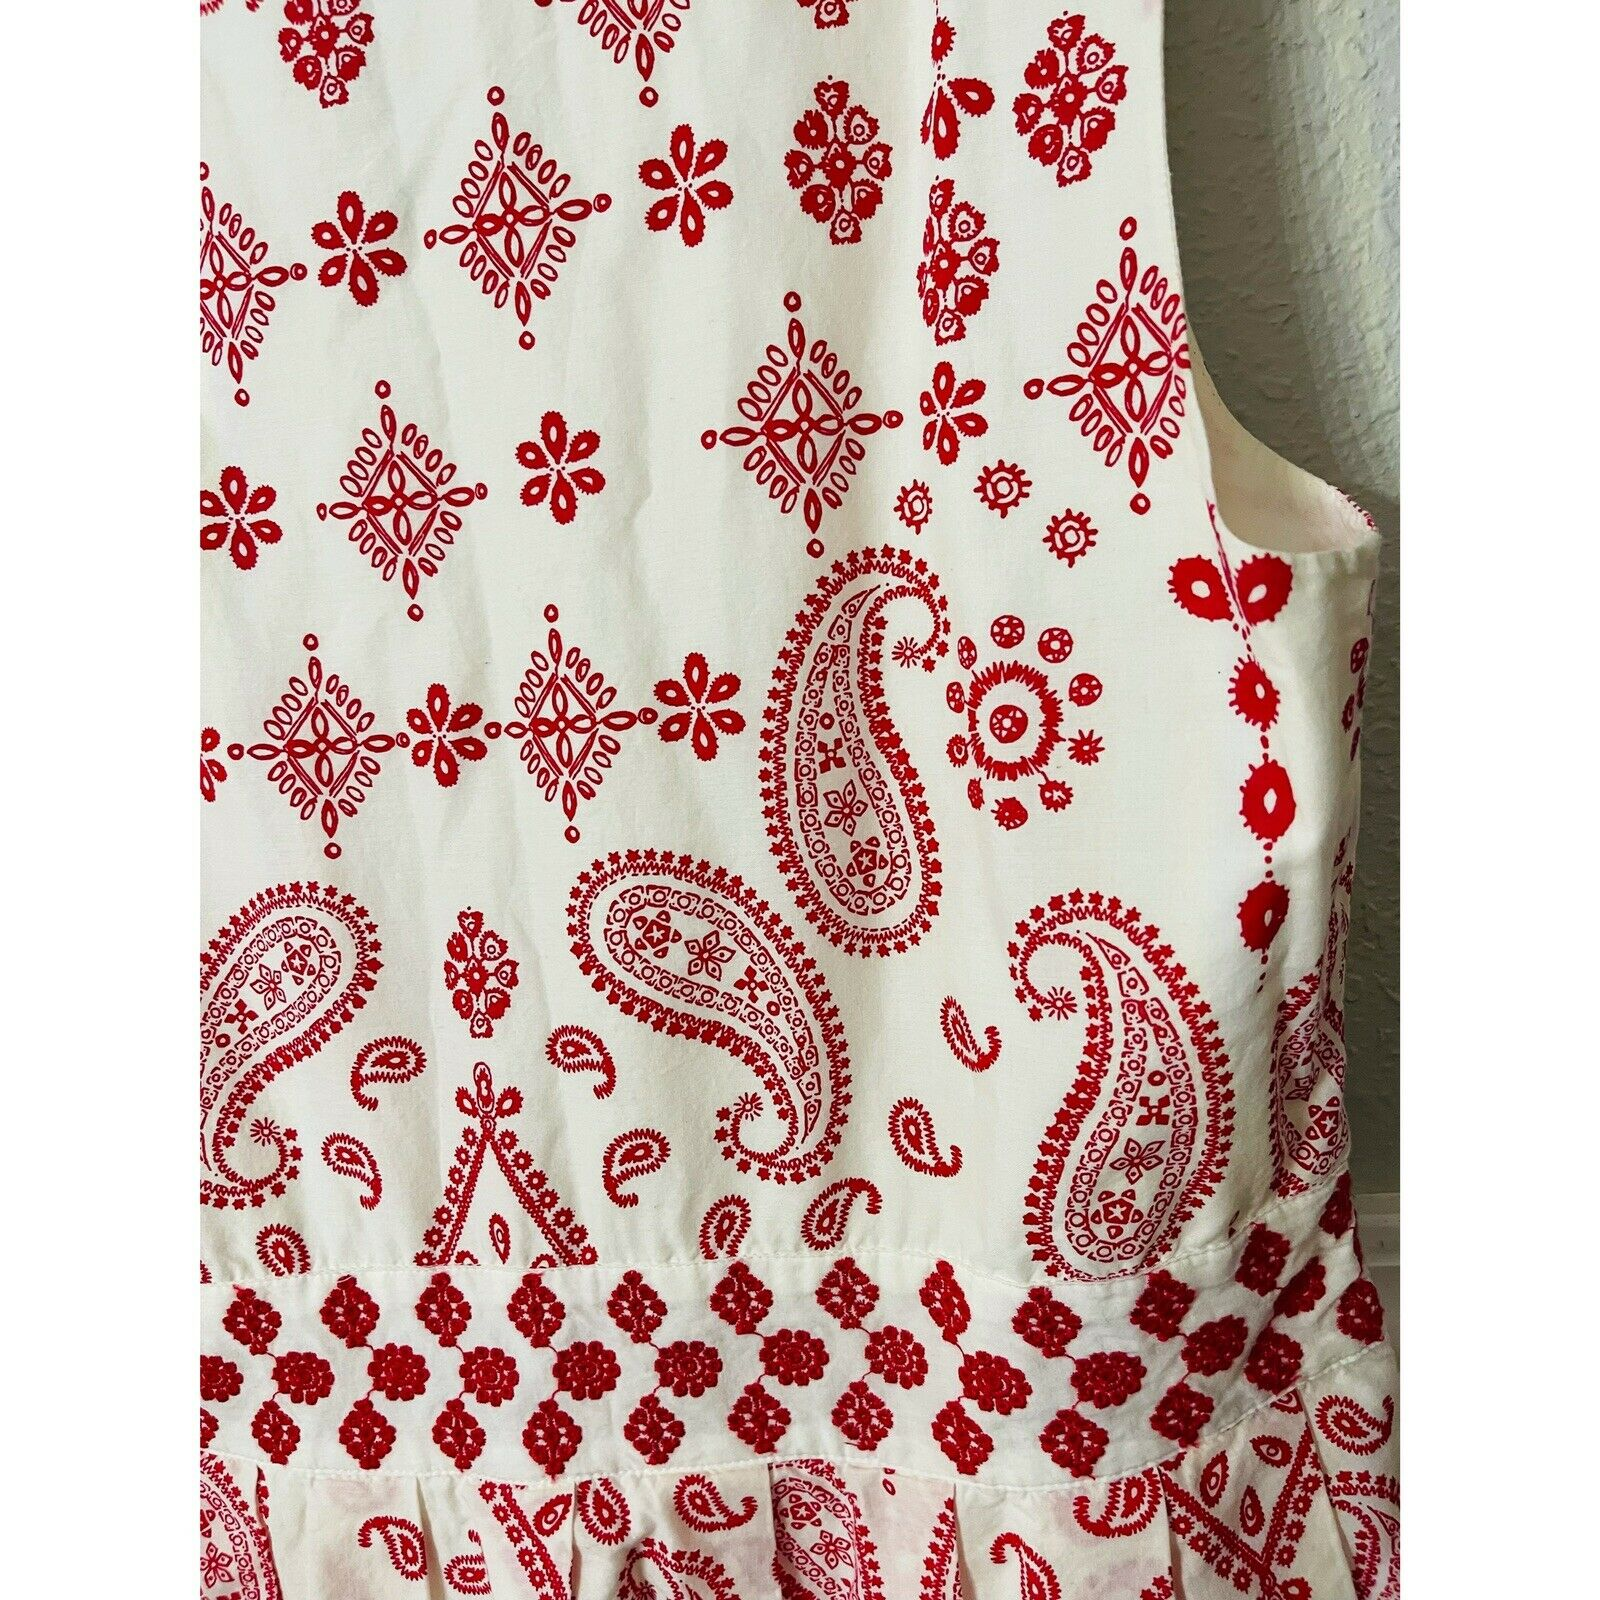 talbots embroidered dress - image 3